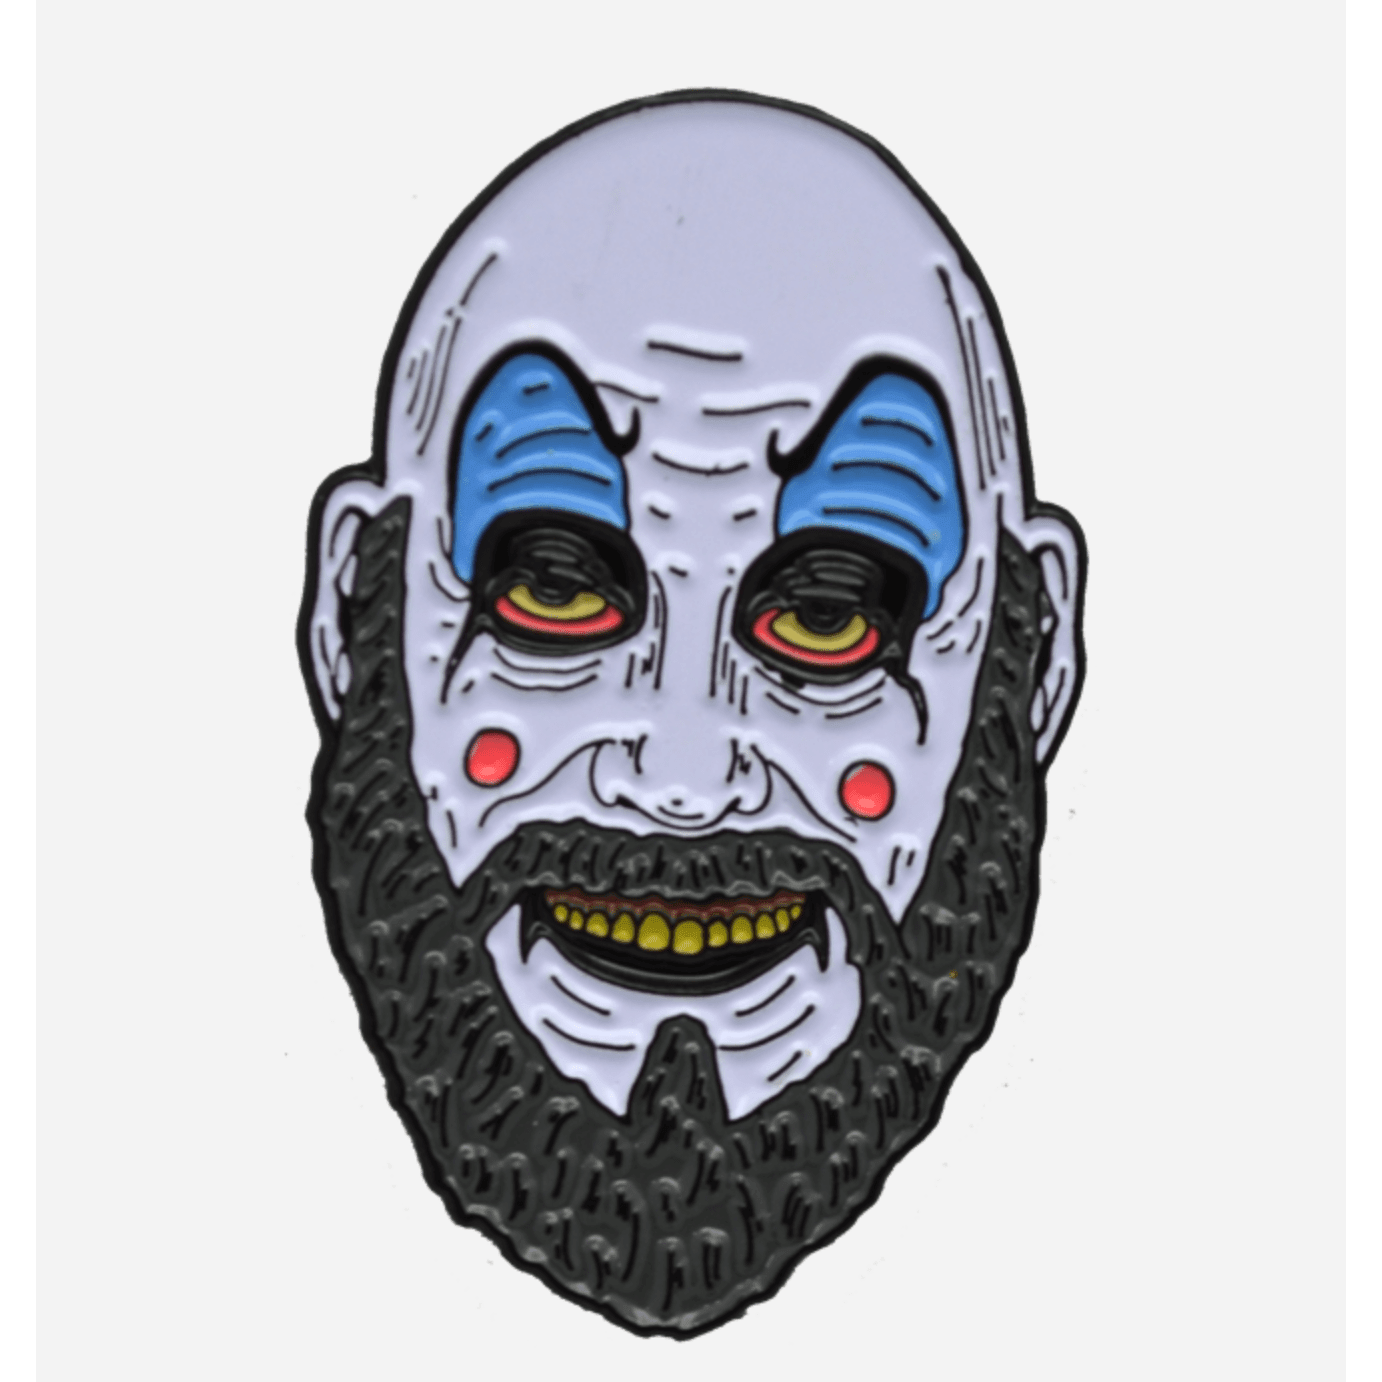 House of 1,000 Corpses Captain Spaulding Pin